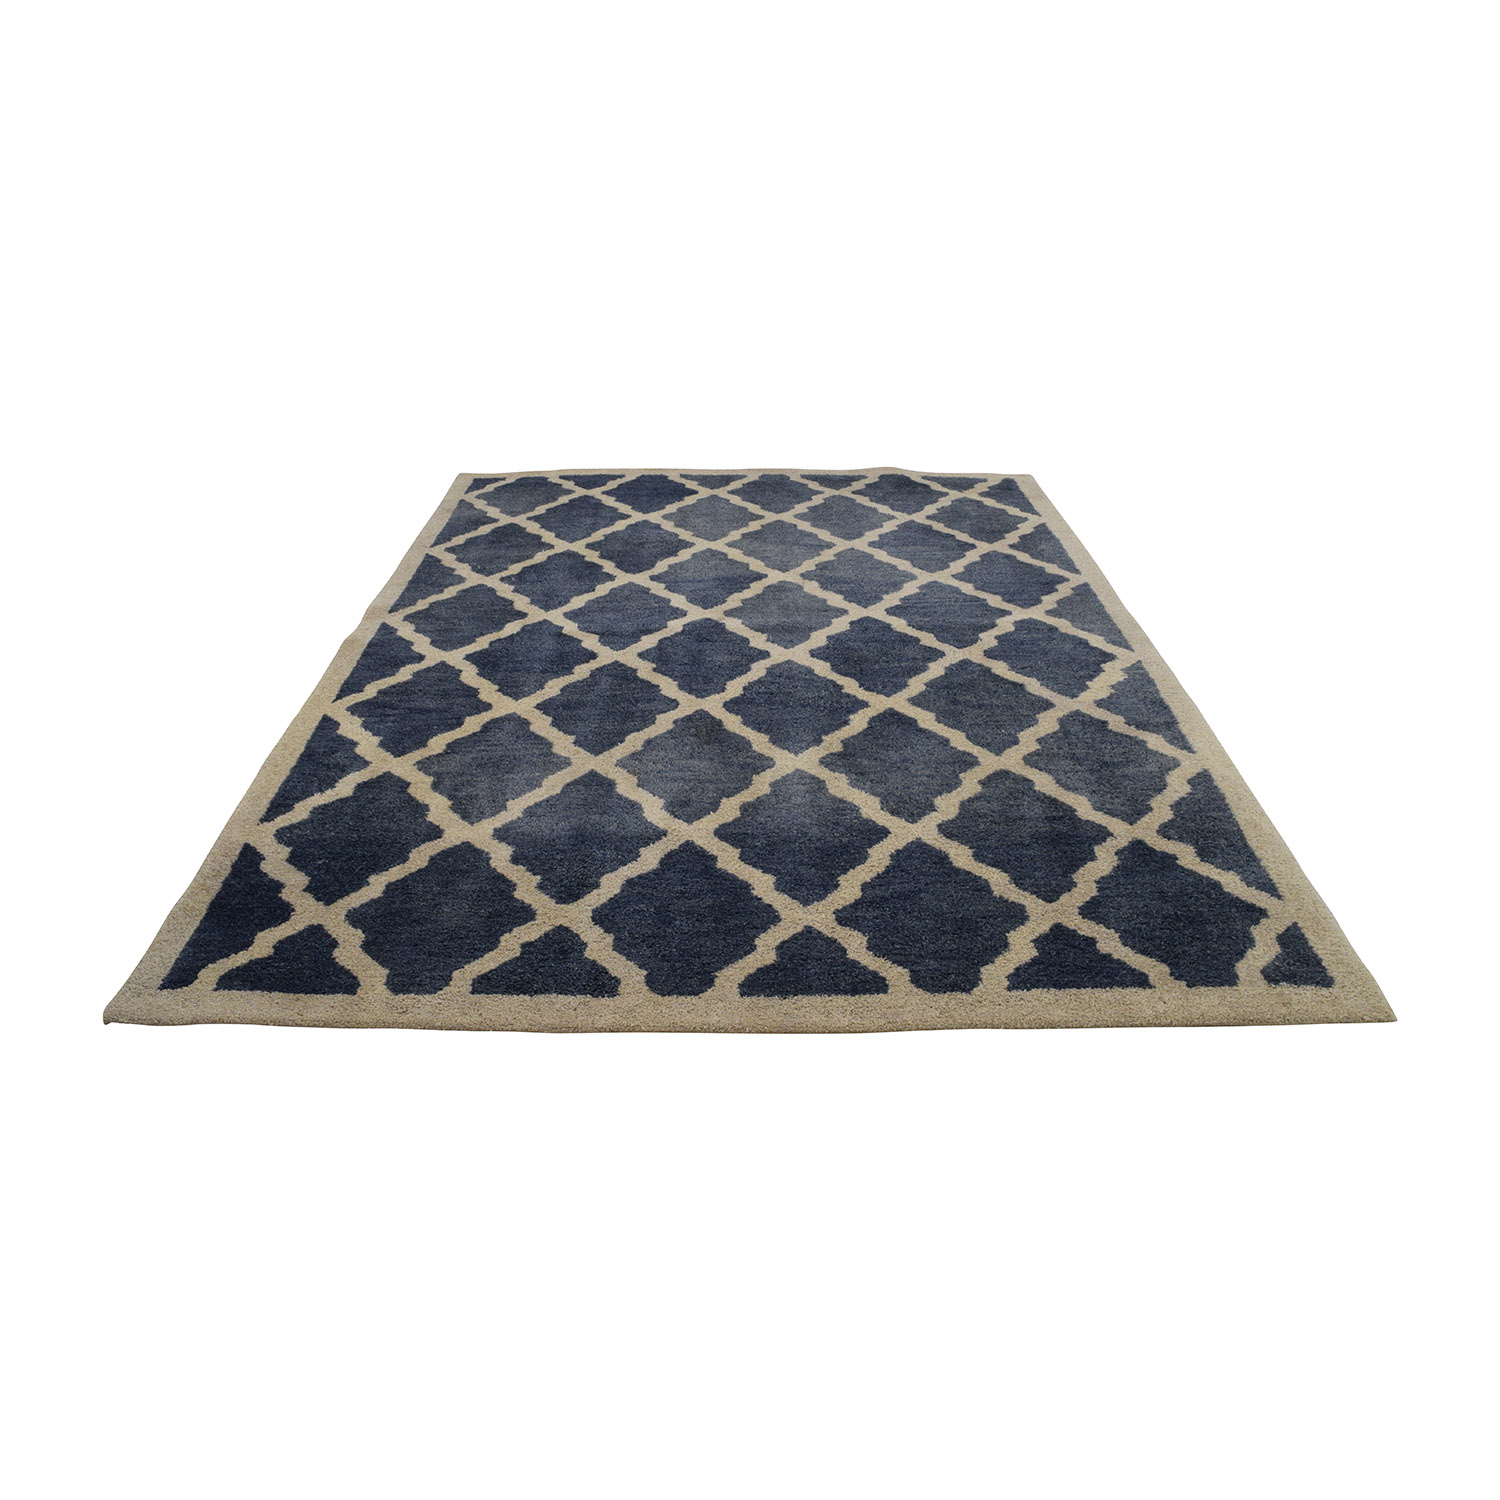 NuLOOM NuLOOM Navy and White Marrakech Trellis Rug nj